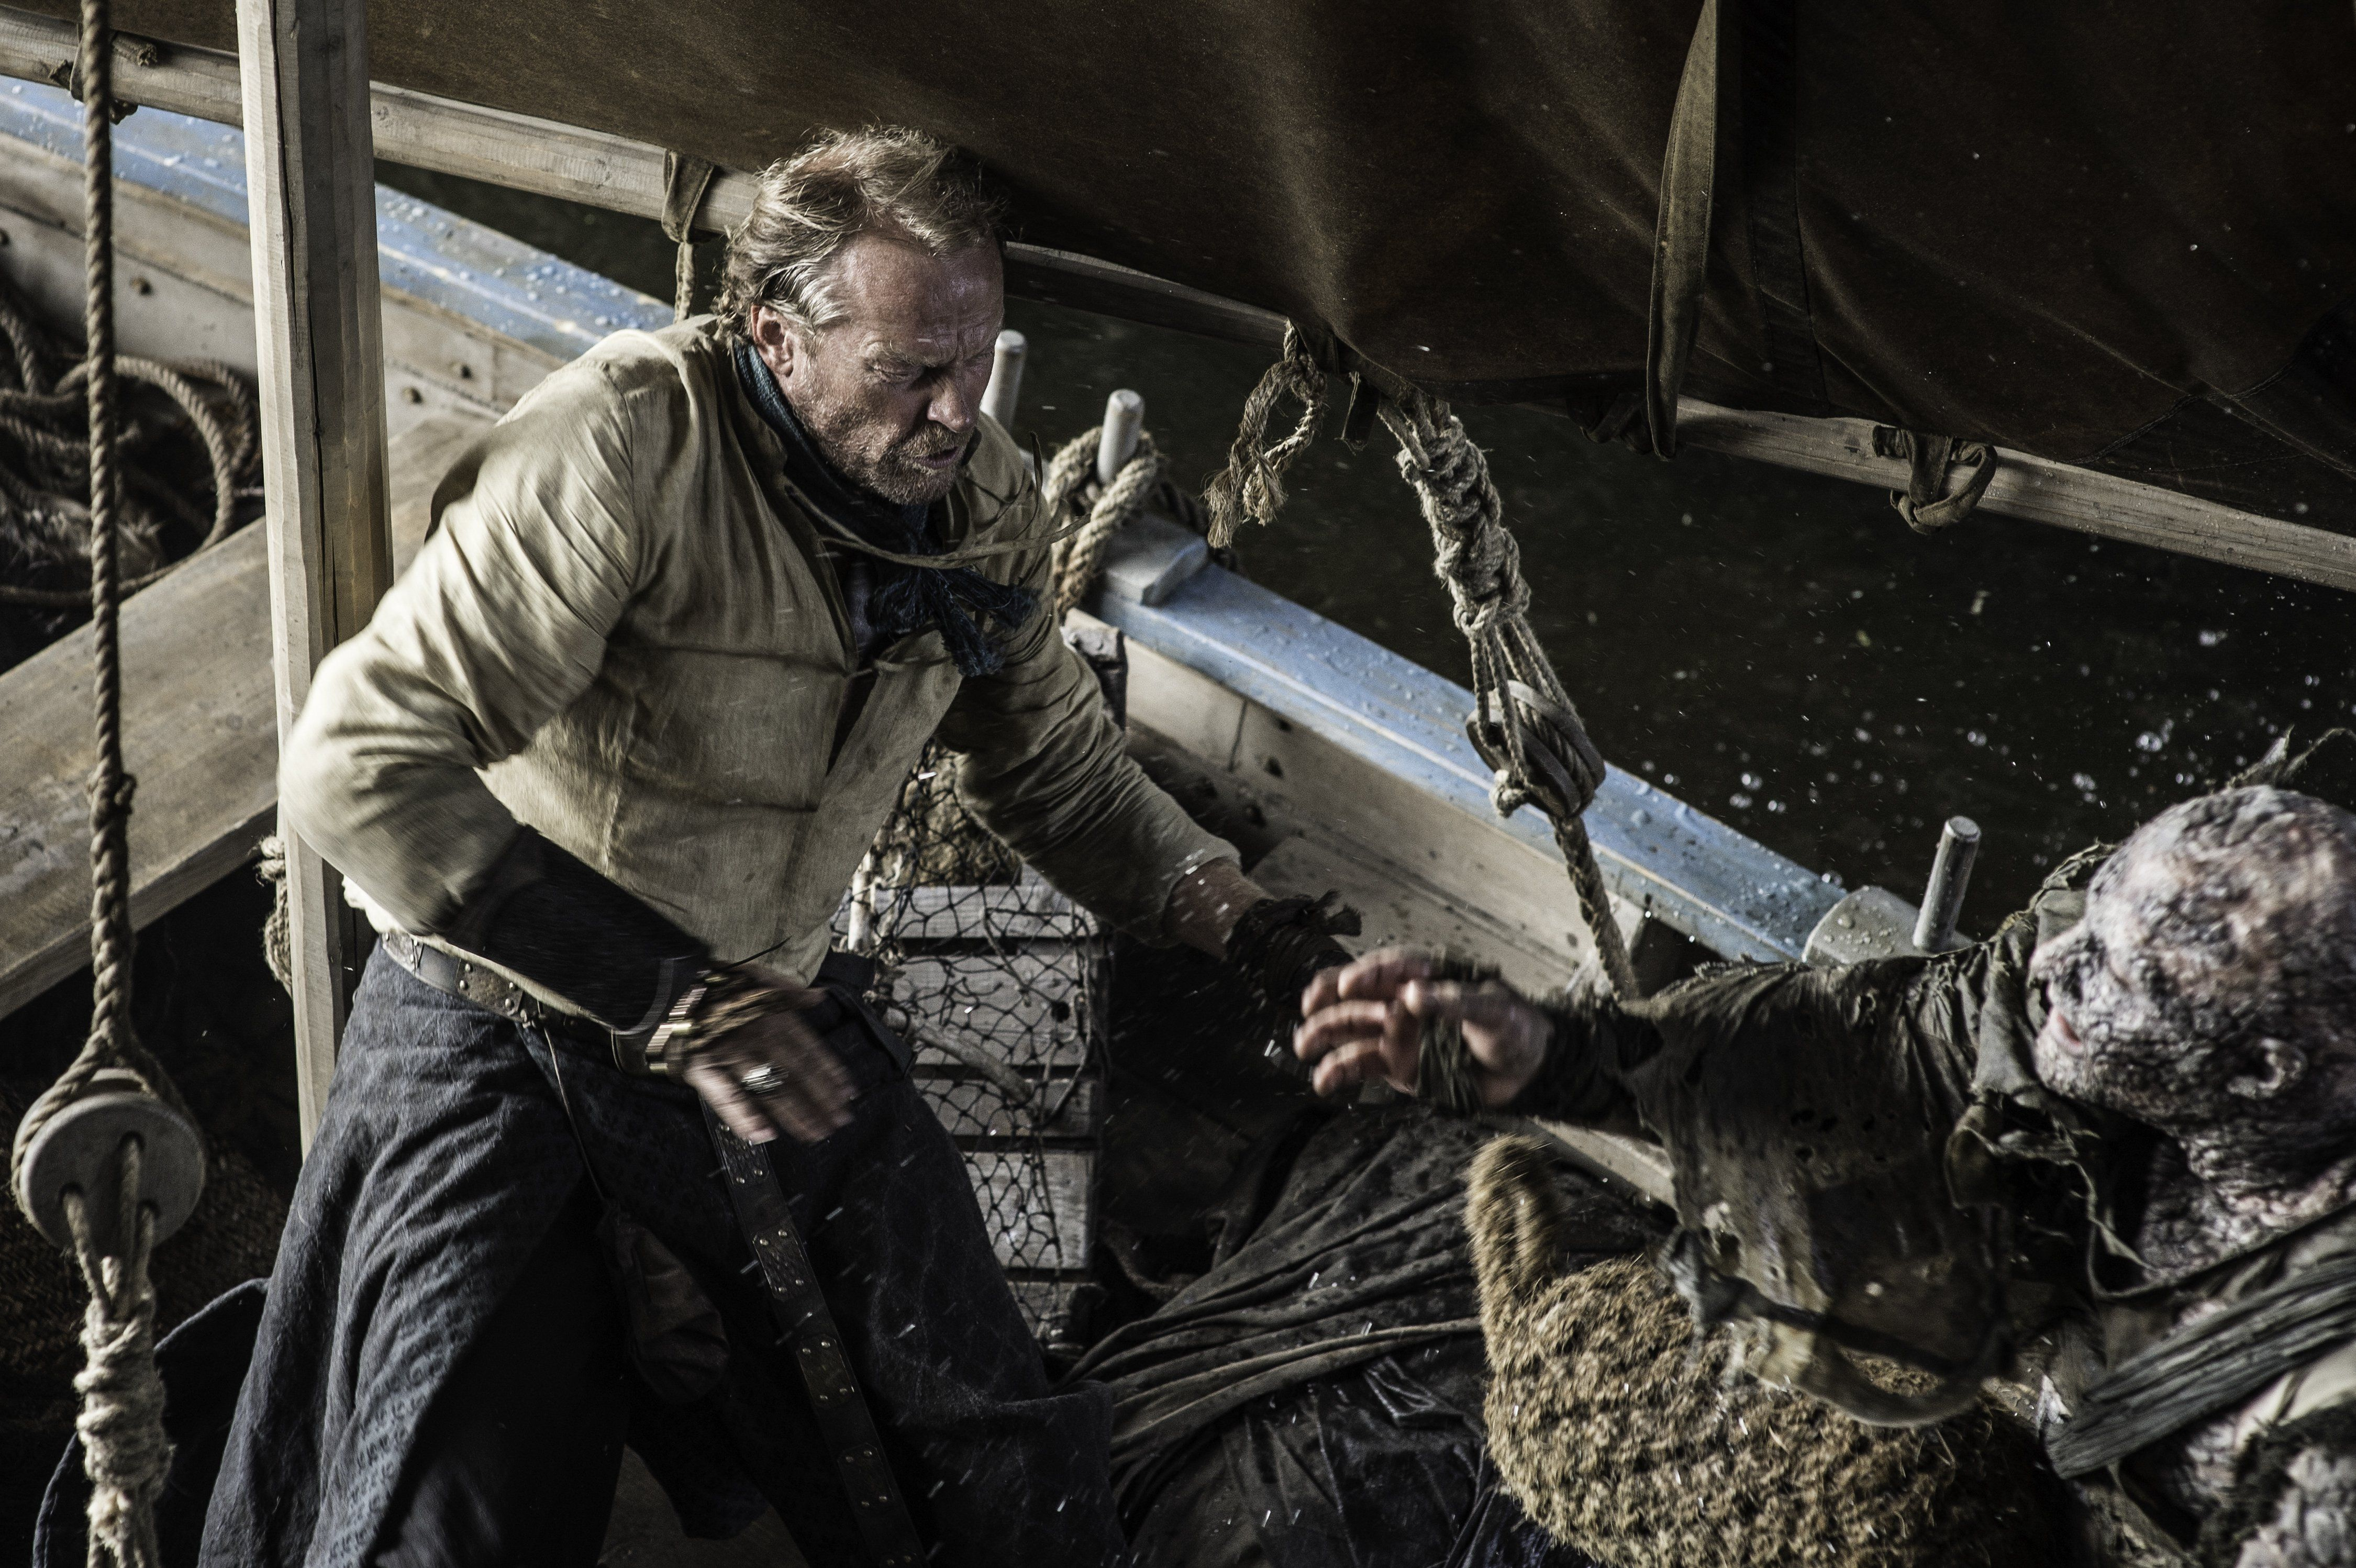 Game Of Thrones Season 5 Episode 5 With Images Game Of Thrones